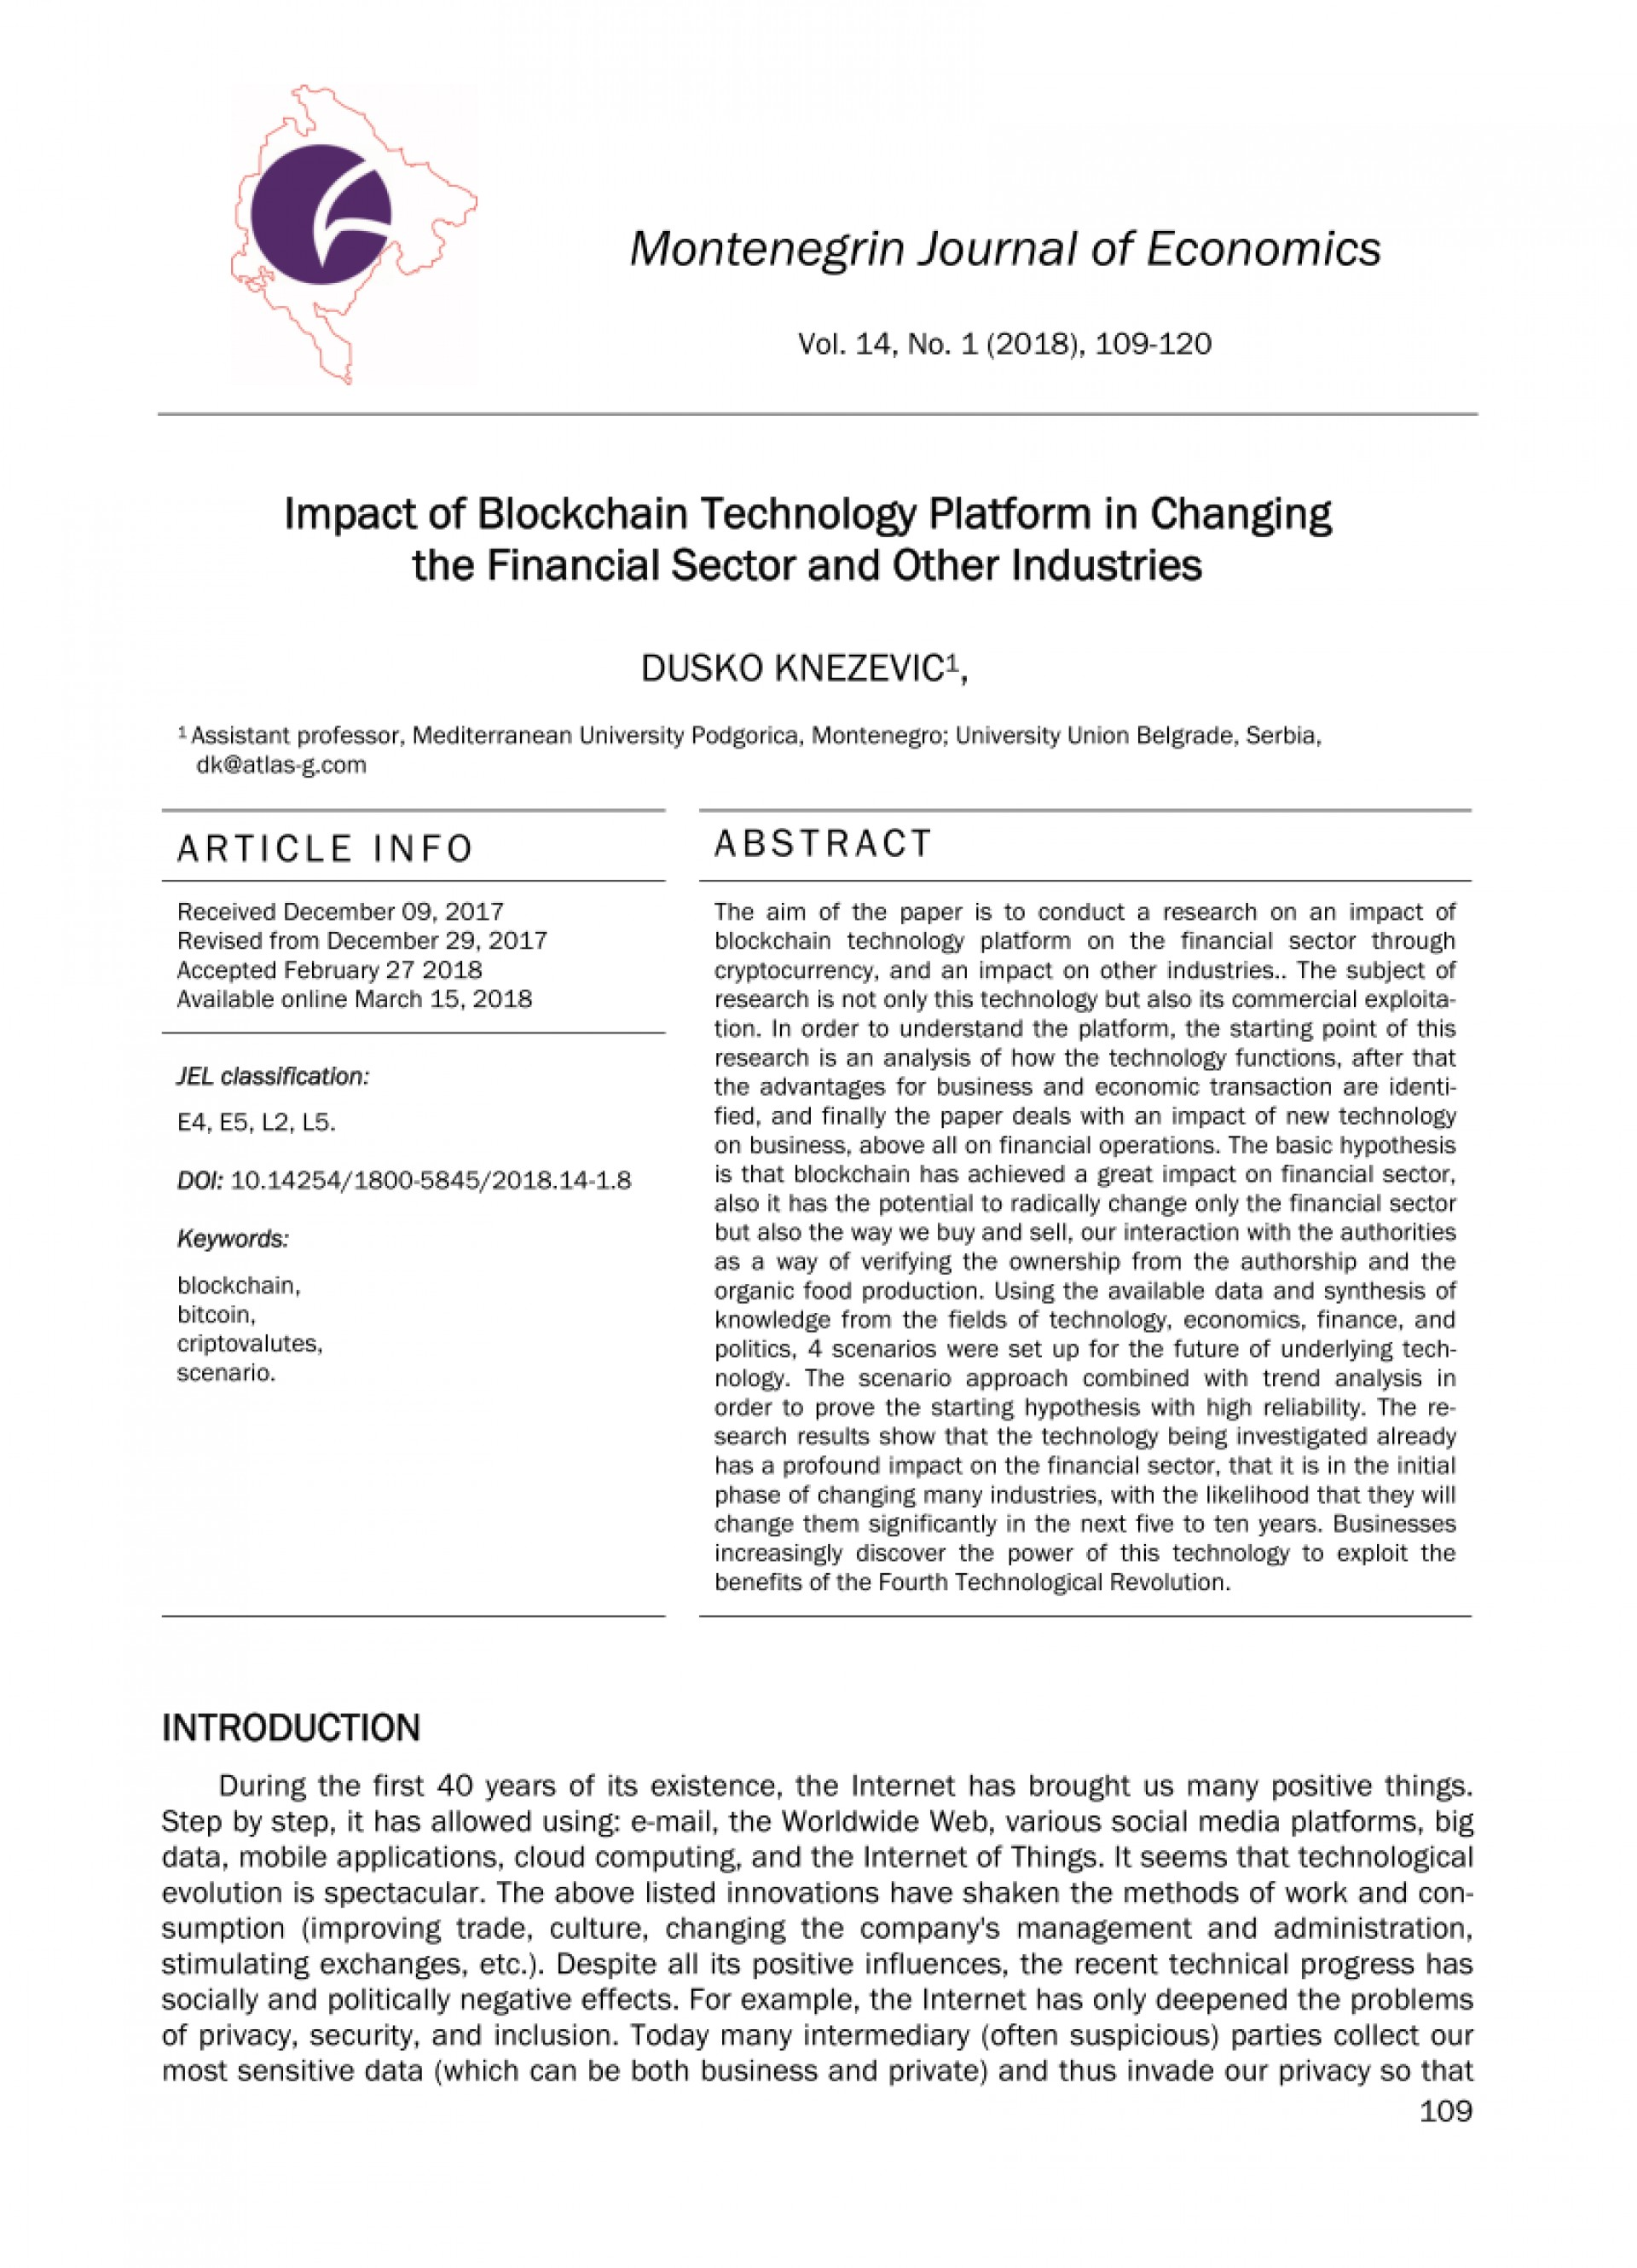 005 Largepreview Blockchain Technology Researchs Incredible Research Papers 1920